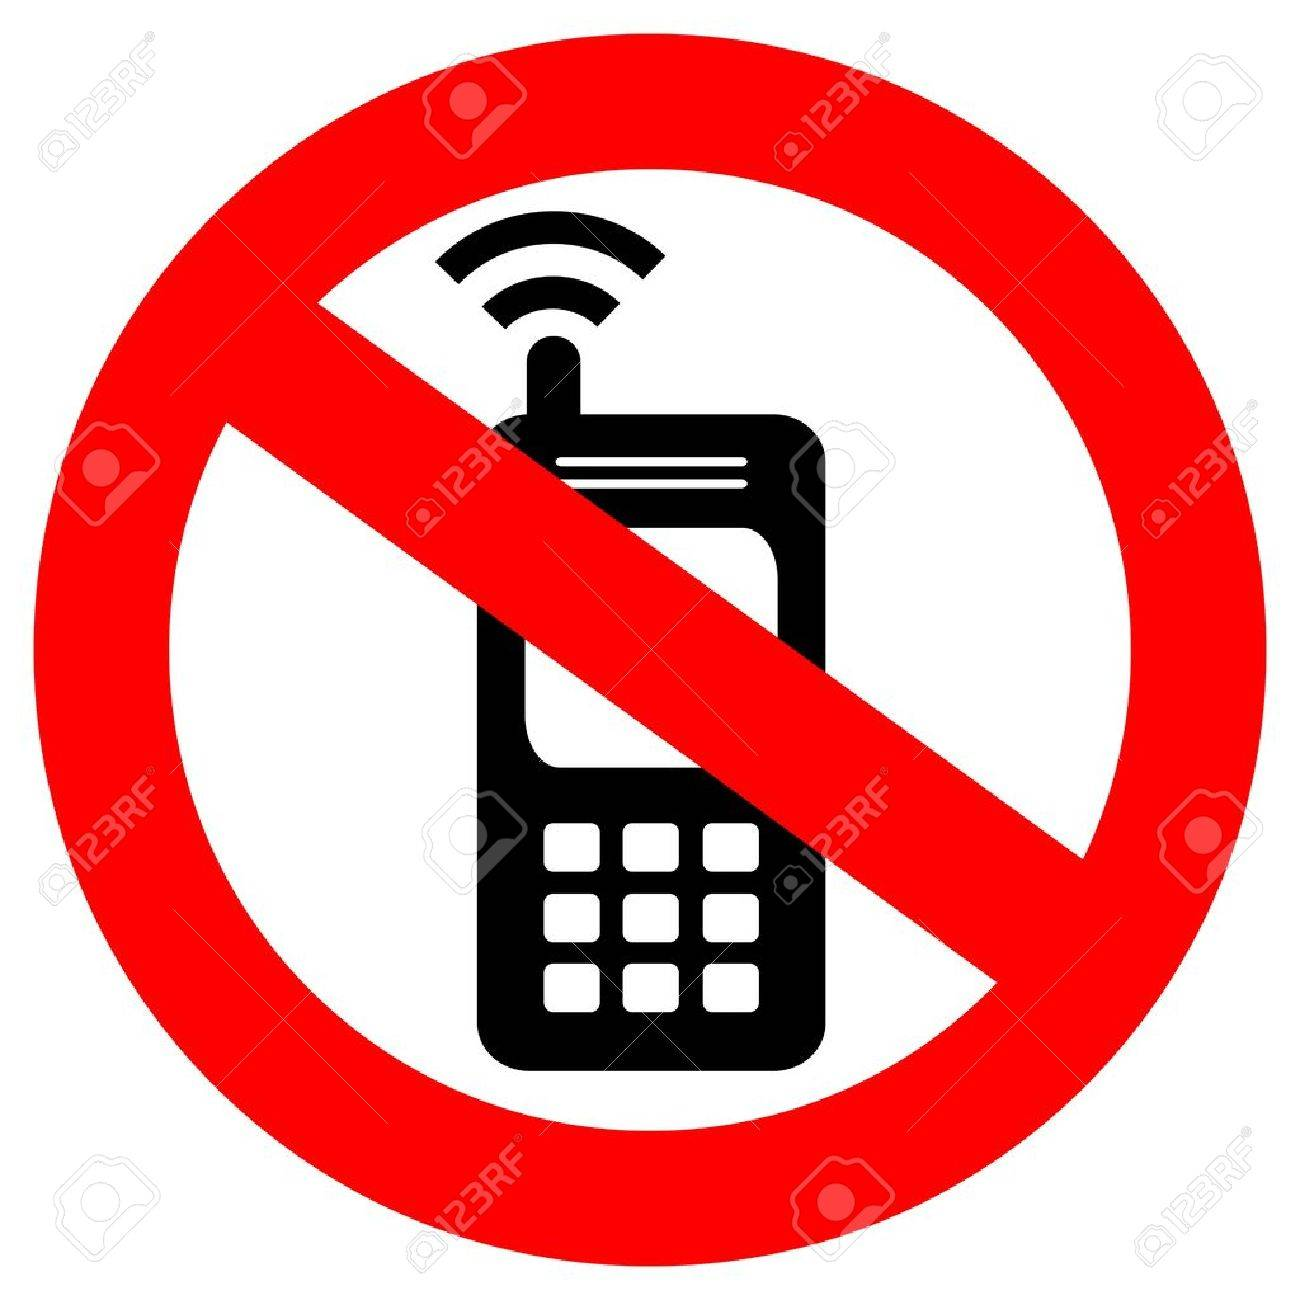 no cell phone sign stock vector 14405400